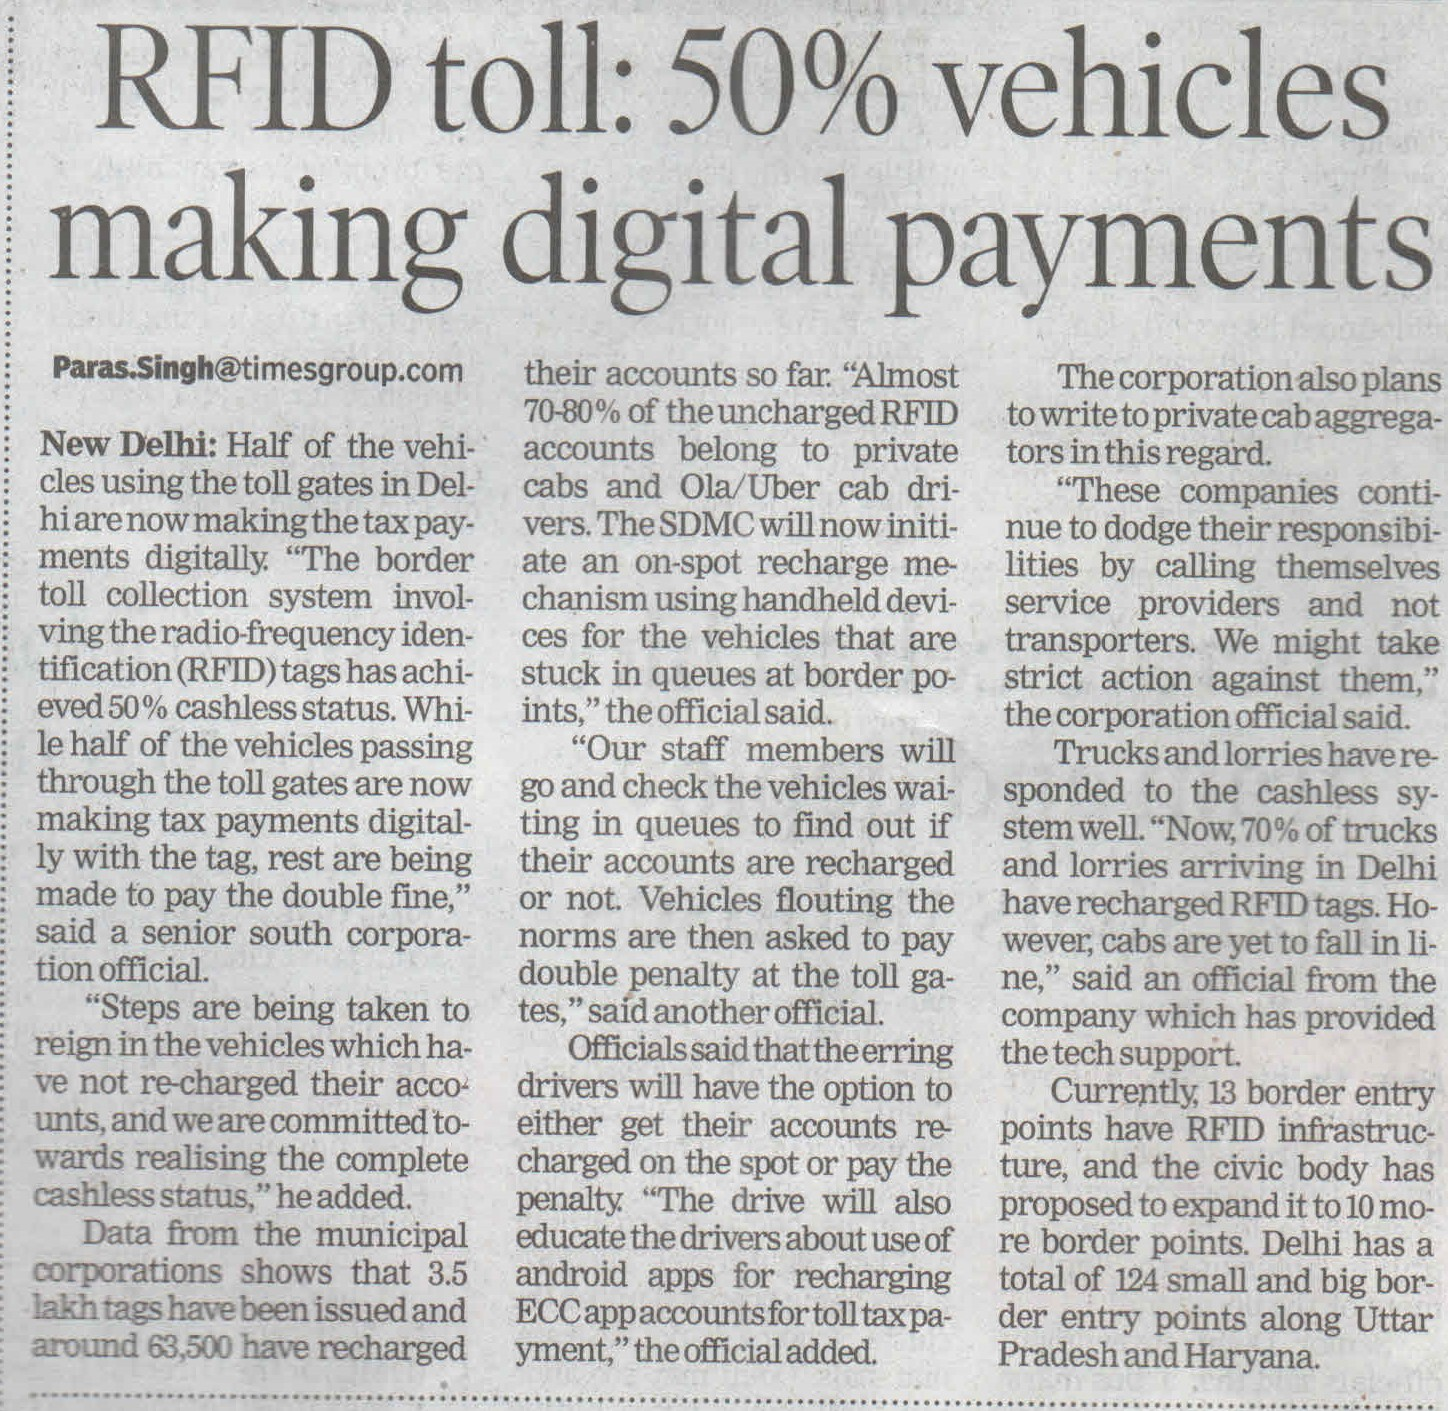 RFID toll: 50% vehicles making digital payments